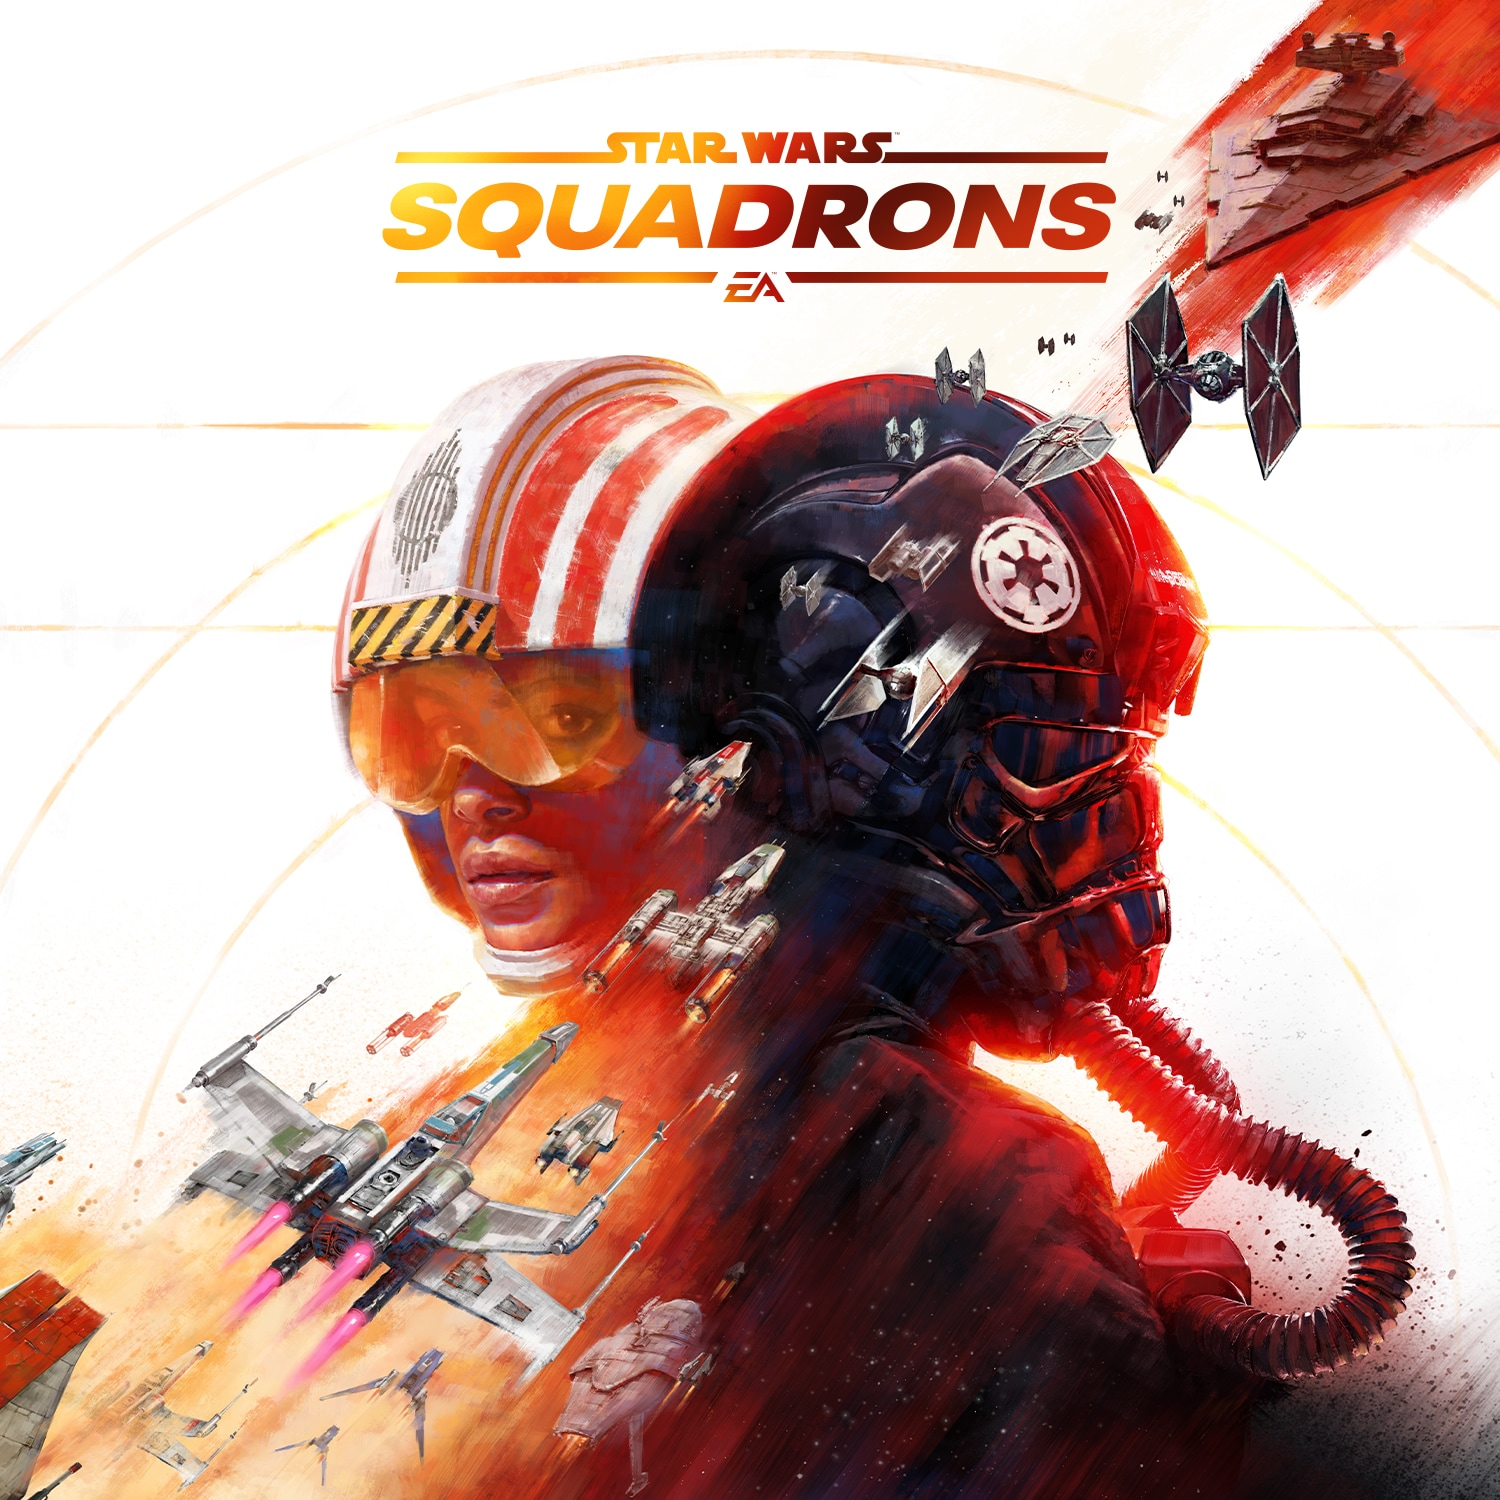 Star Wars: Squadrons is available for pre-order and lands on retail and digital storefronts on October 2 for $39.99.